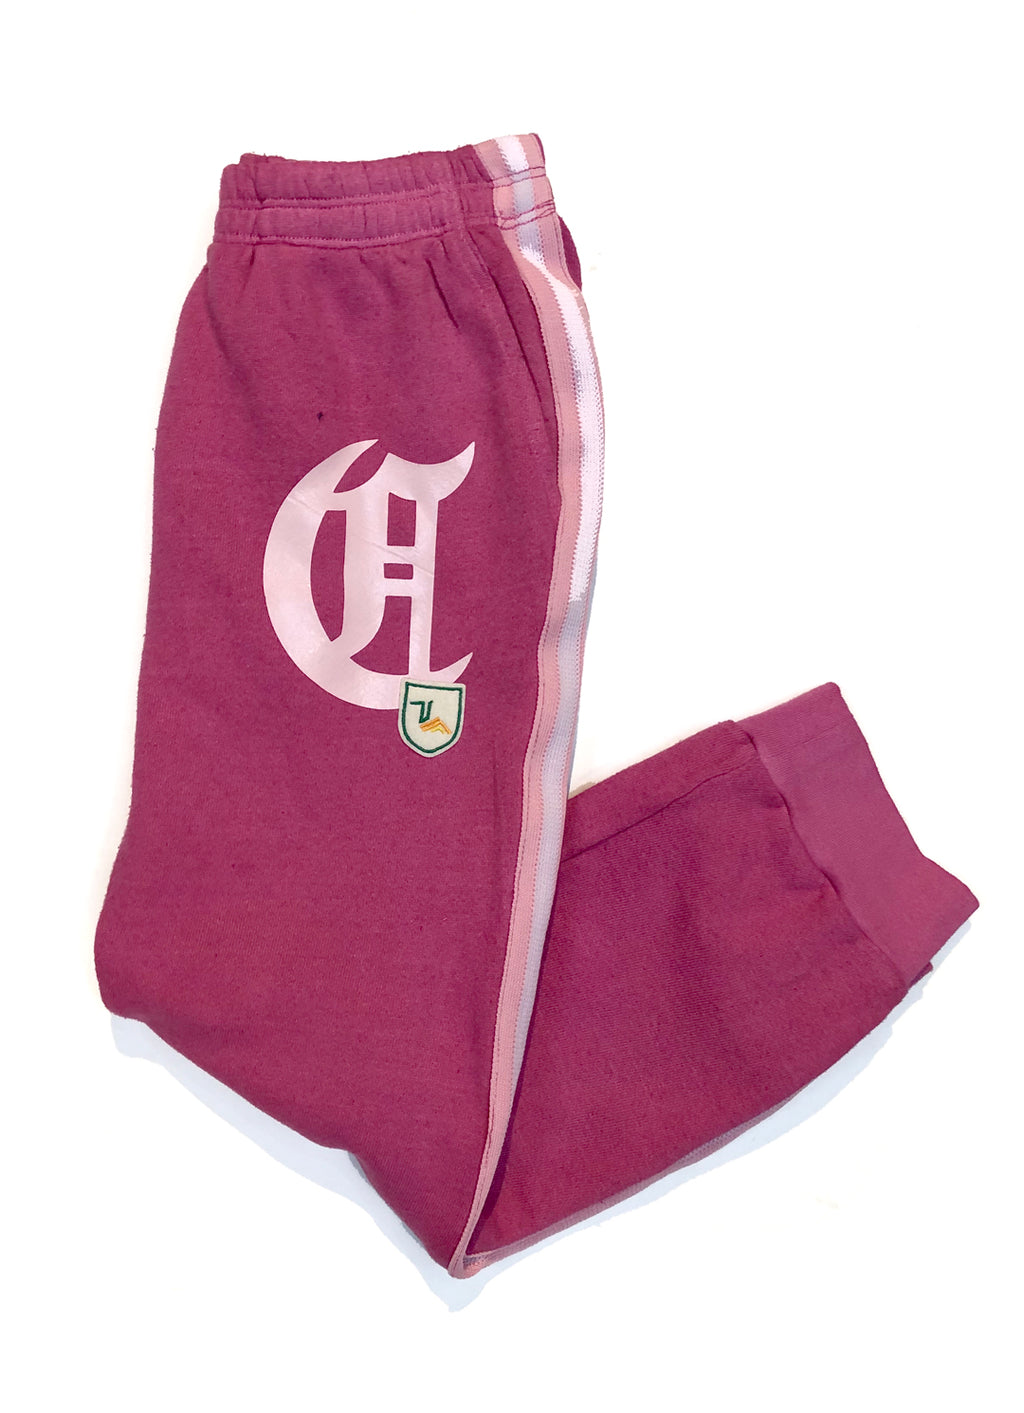 J. Youth Sumac Sweatpant - Raspberry